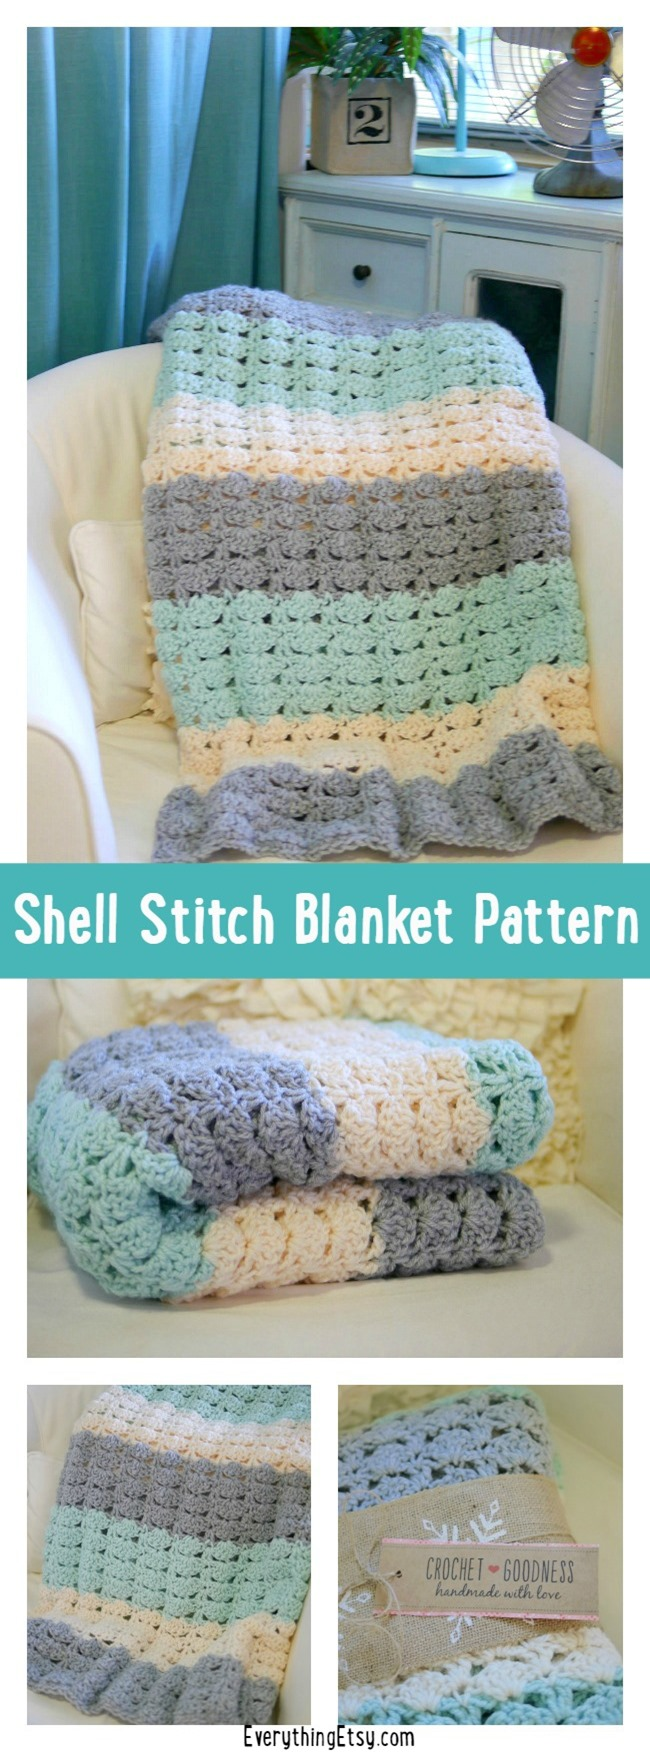 Free Crochet Pattern - Easy Shell Stitch Blanket Pattern on EverythingEtsy.com